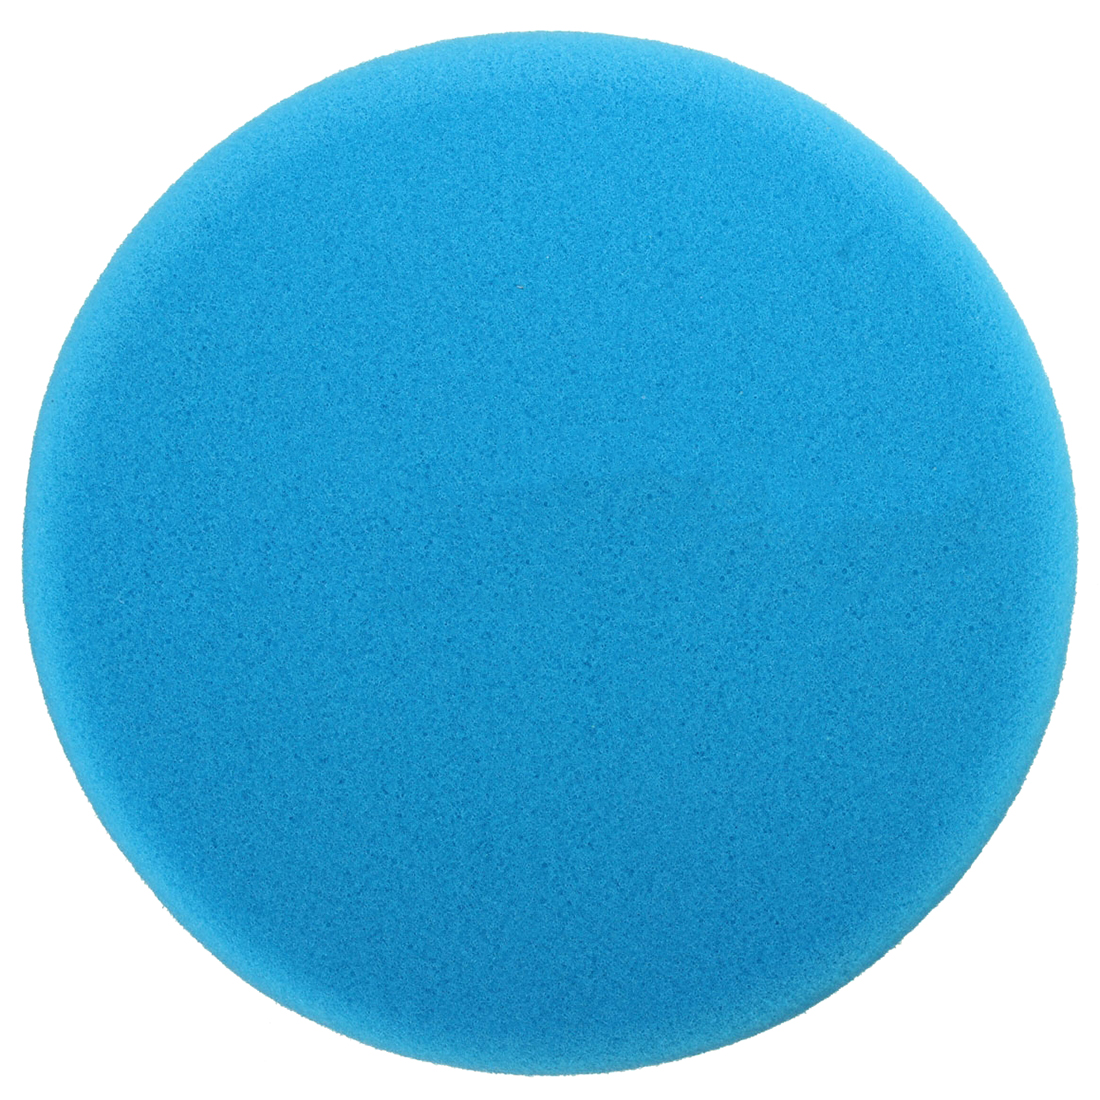 6 Inch 150mm Soft Flat Sponge Buffer Polishing Pad Kit For Auto Car Polisher Color:Blue